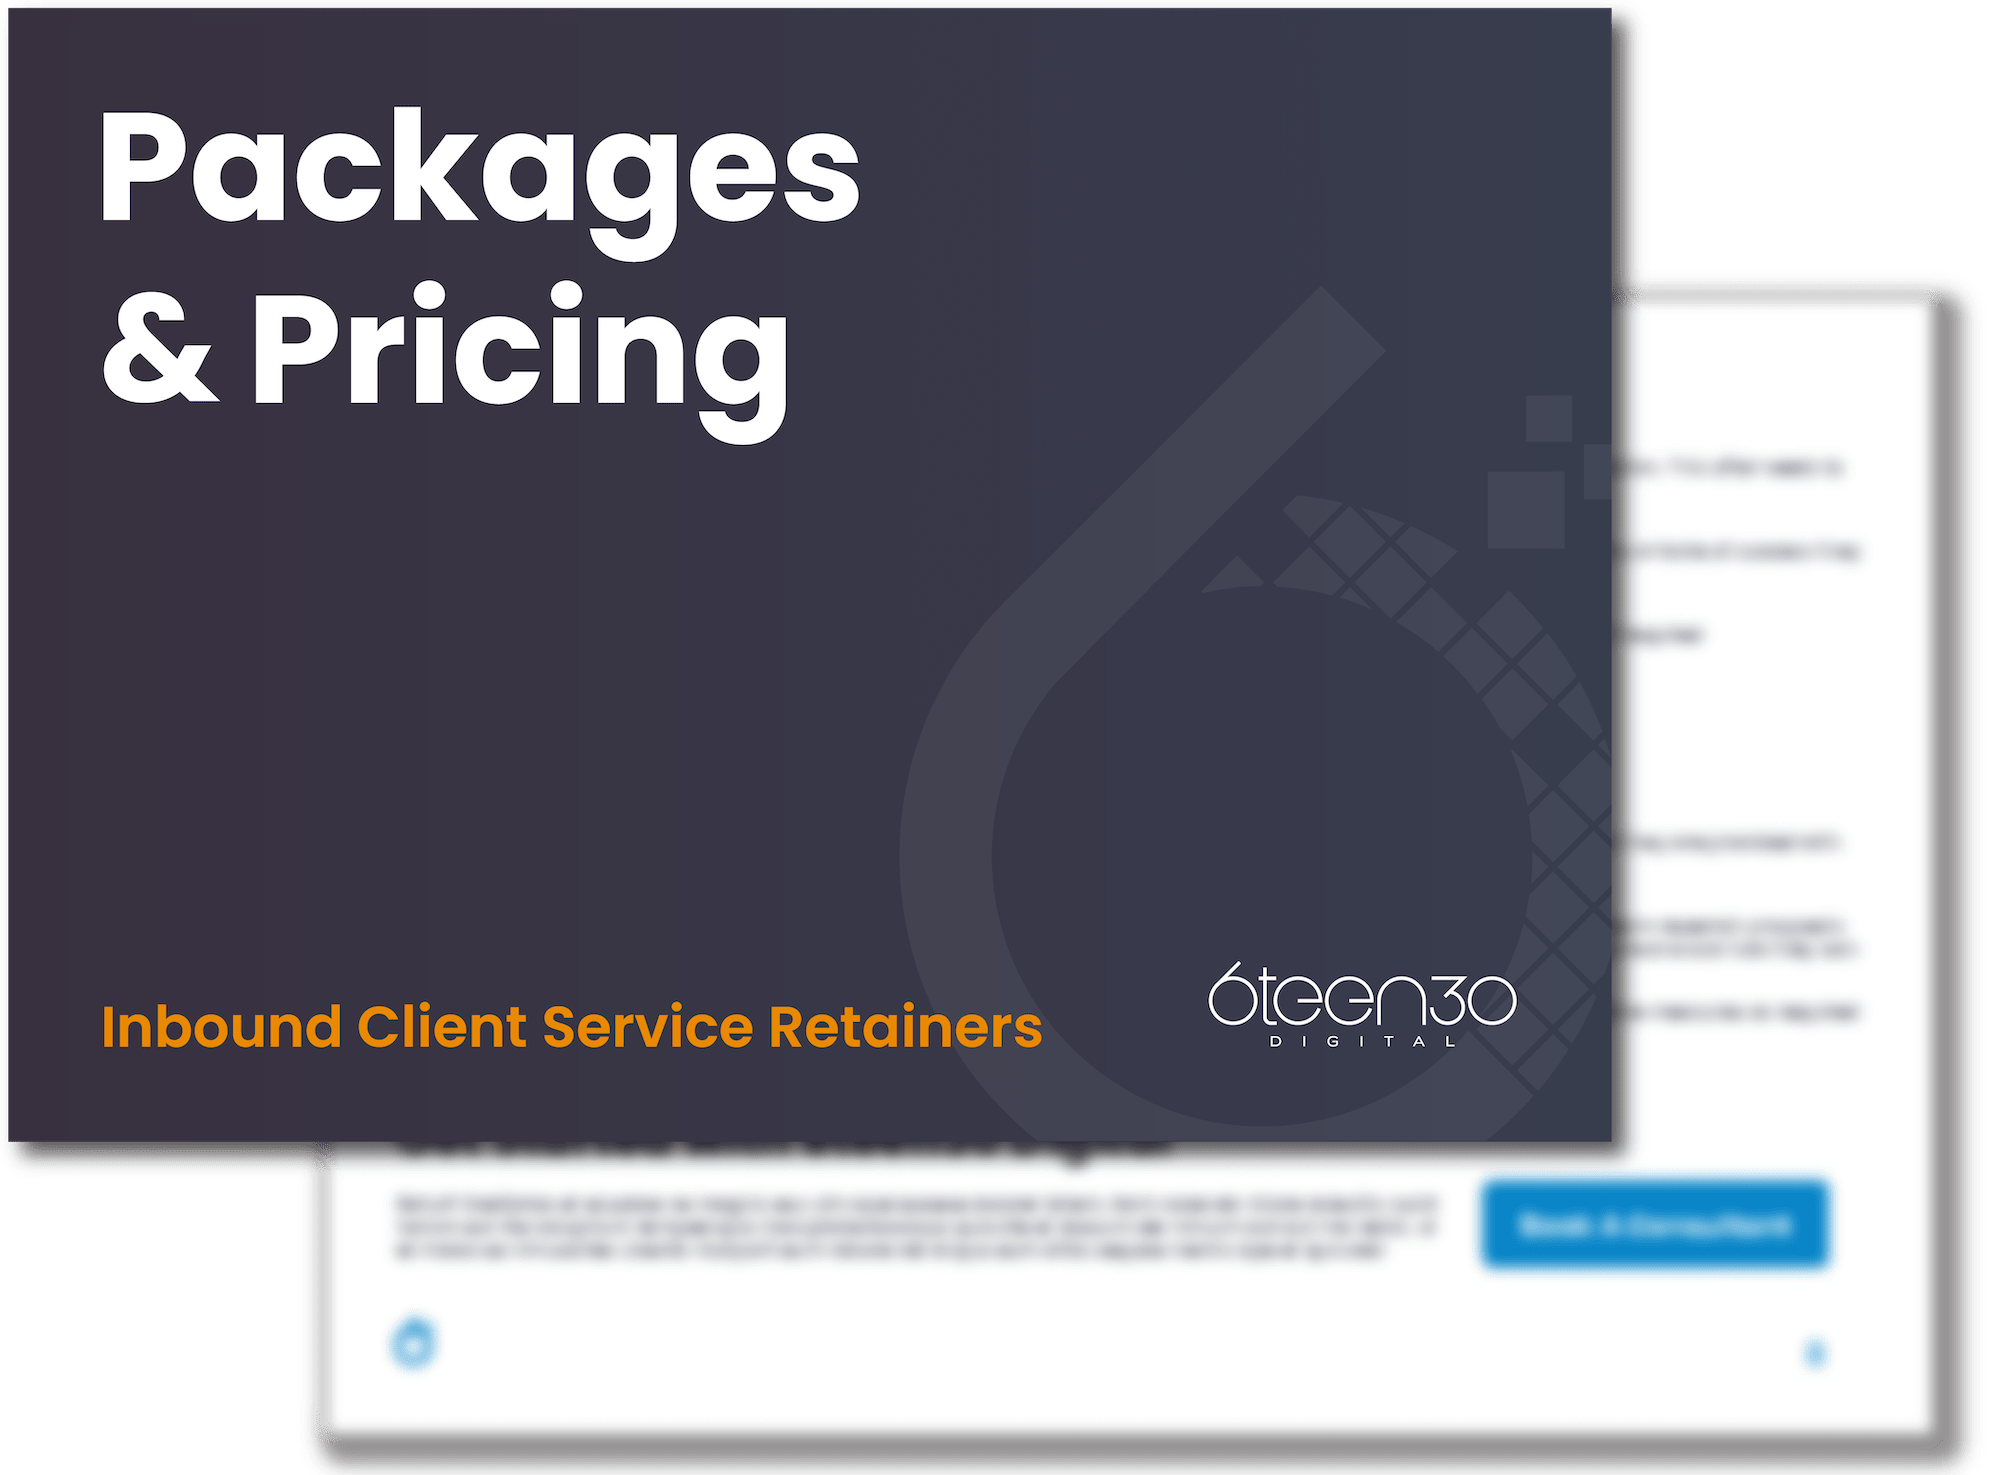 6teen30 Digital Inbound Customer Service Packages and Retainers Guide